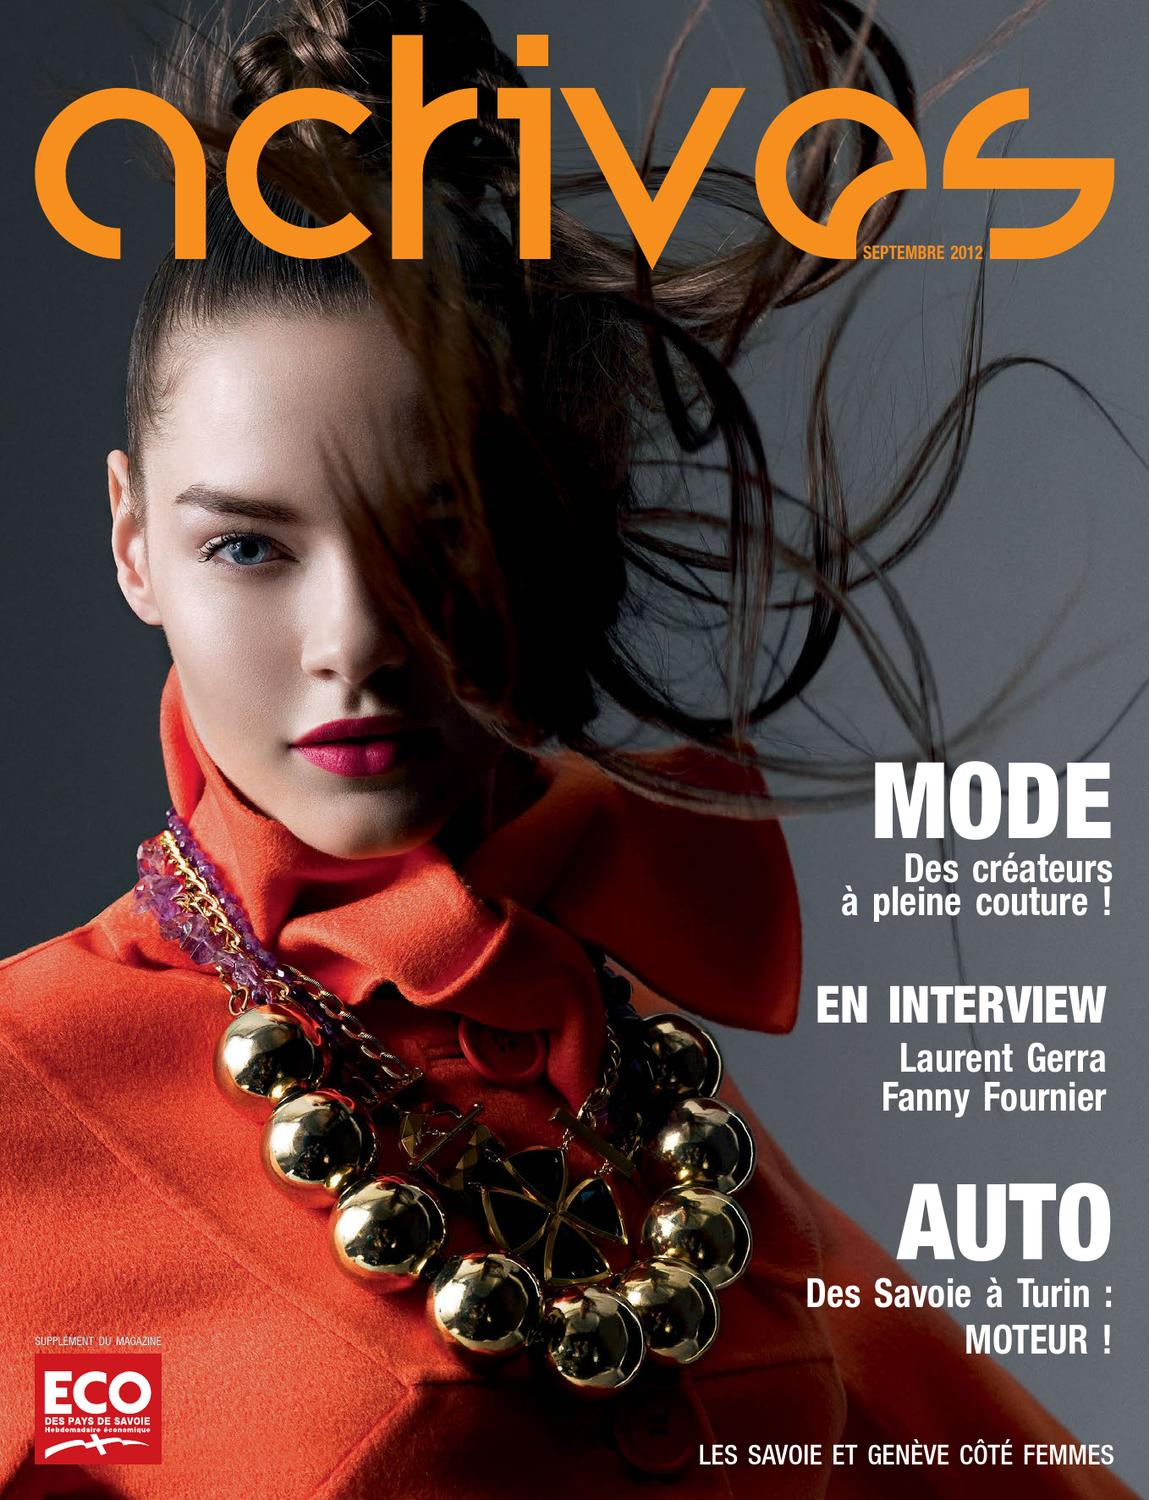 Actives magazine - Février 2012 by Sopreda 2 - issuu 732c7f199f82